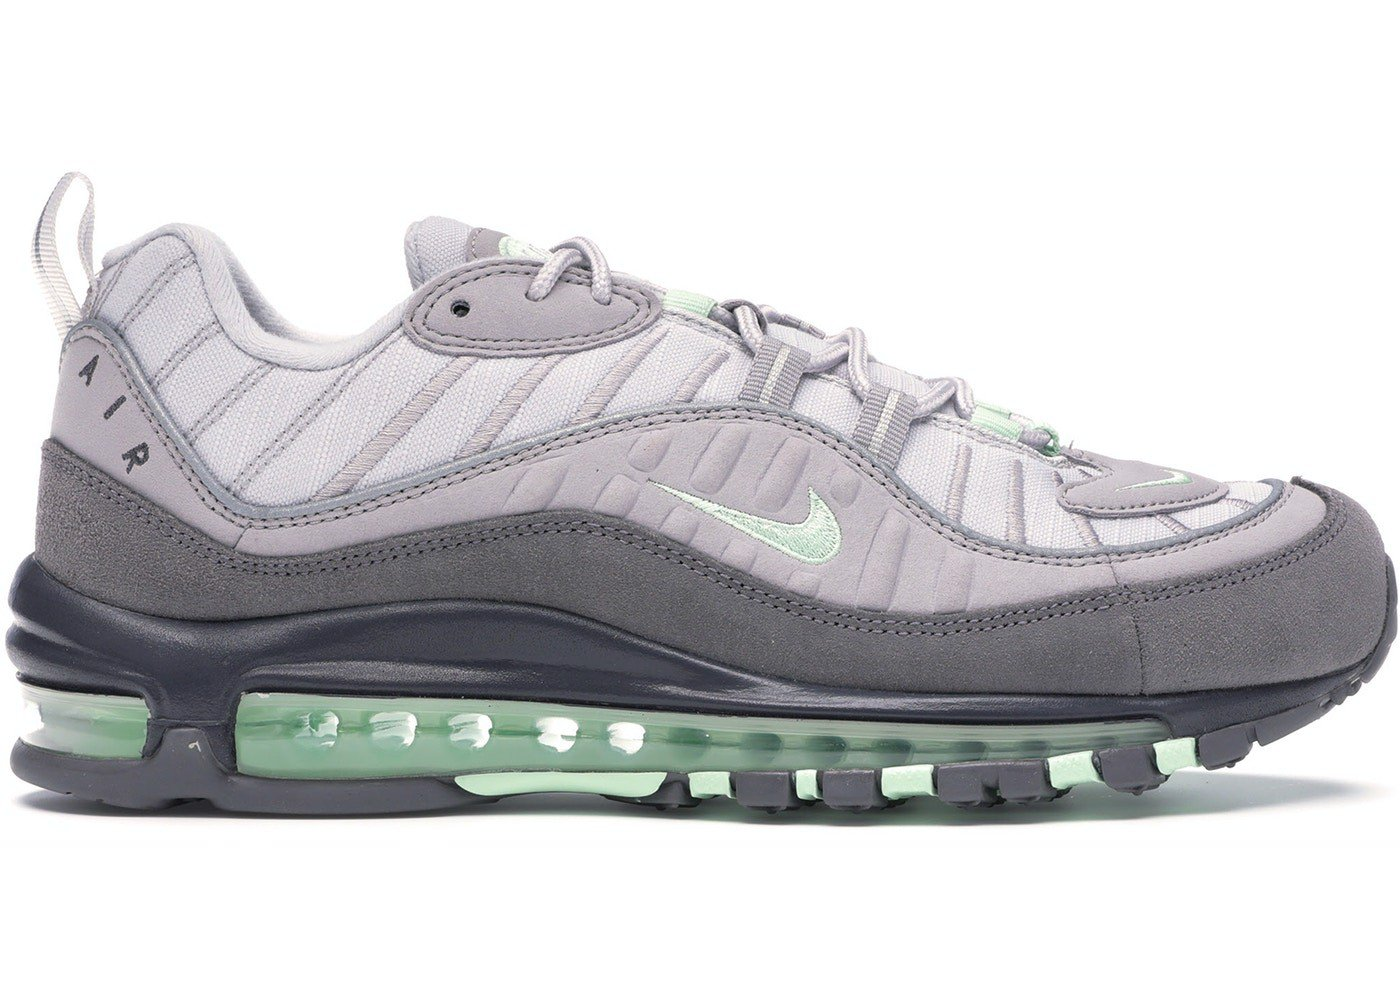 Nike Air Max 98 Vast Grey Fresh Mint 640744-011